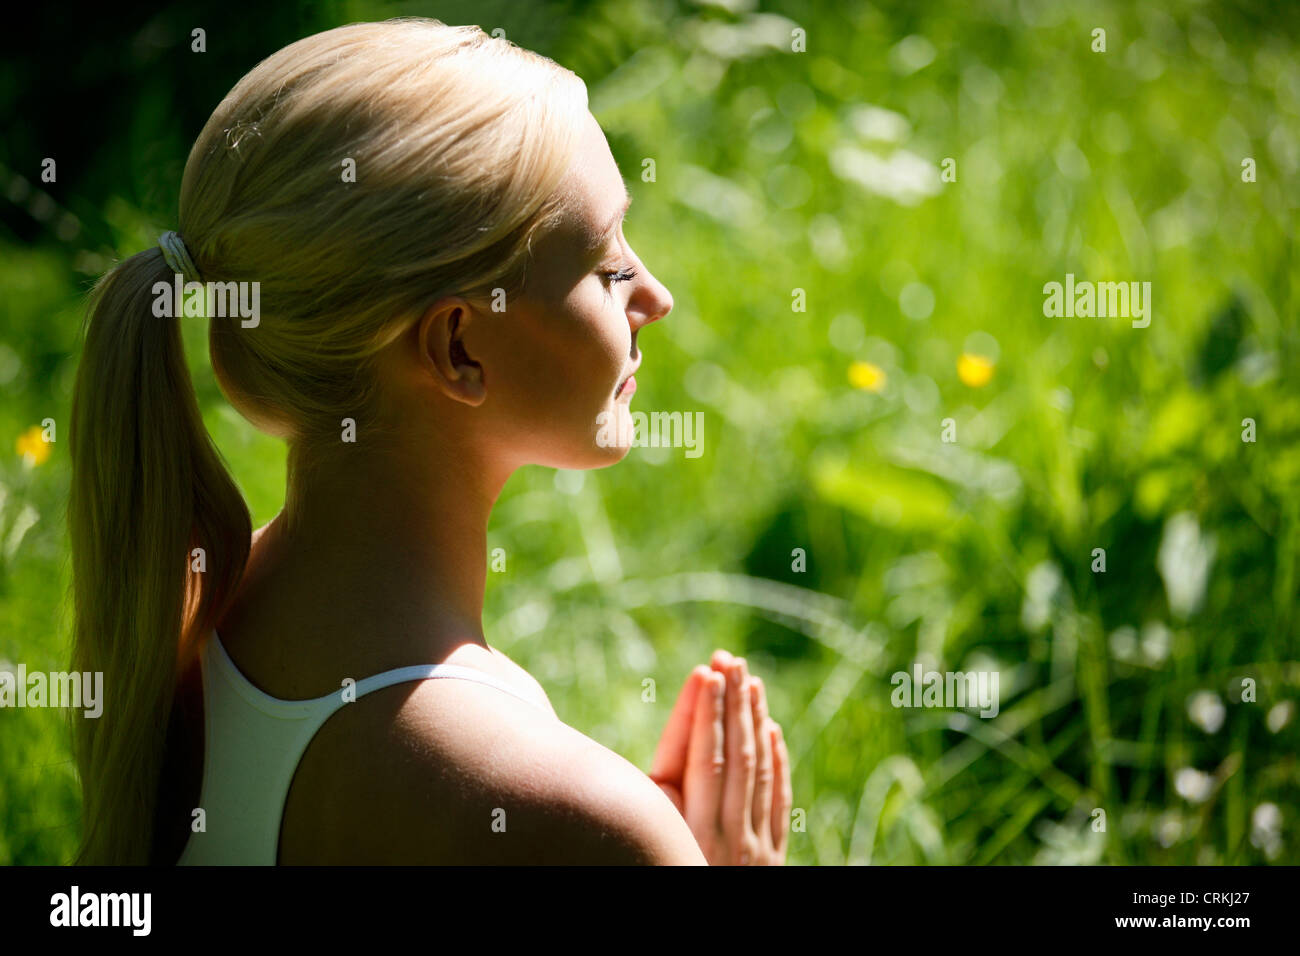 A young woman practicing yoga outside, hands in prayer position - Stock Image